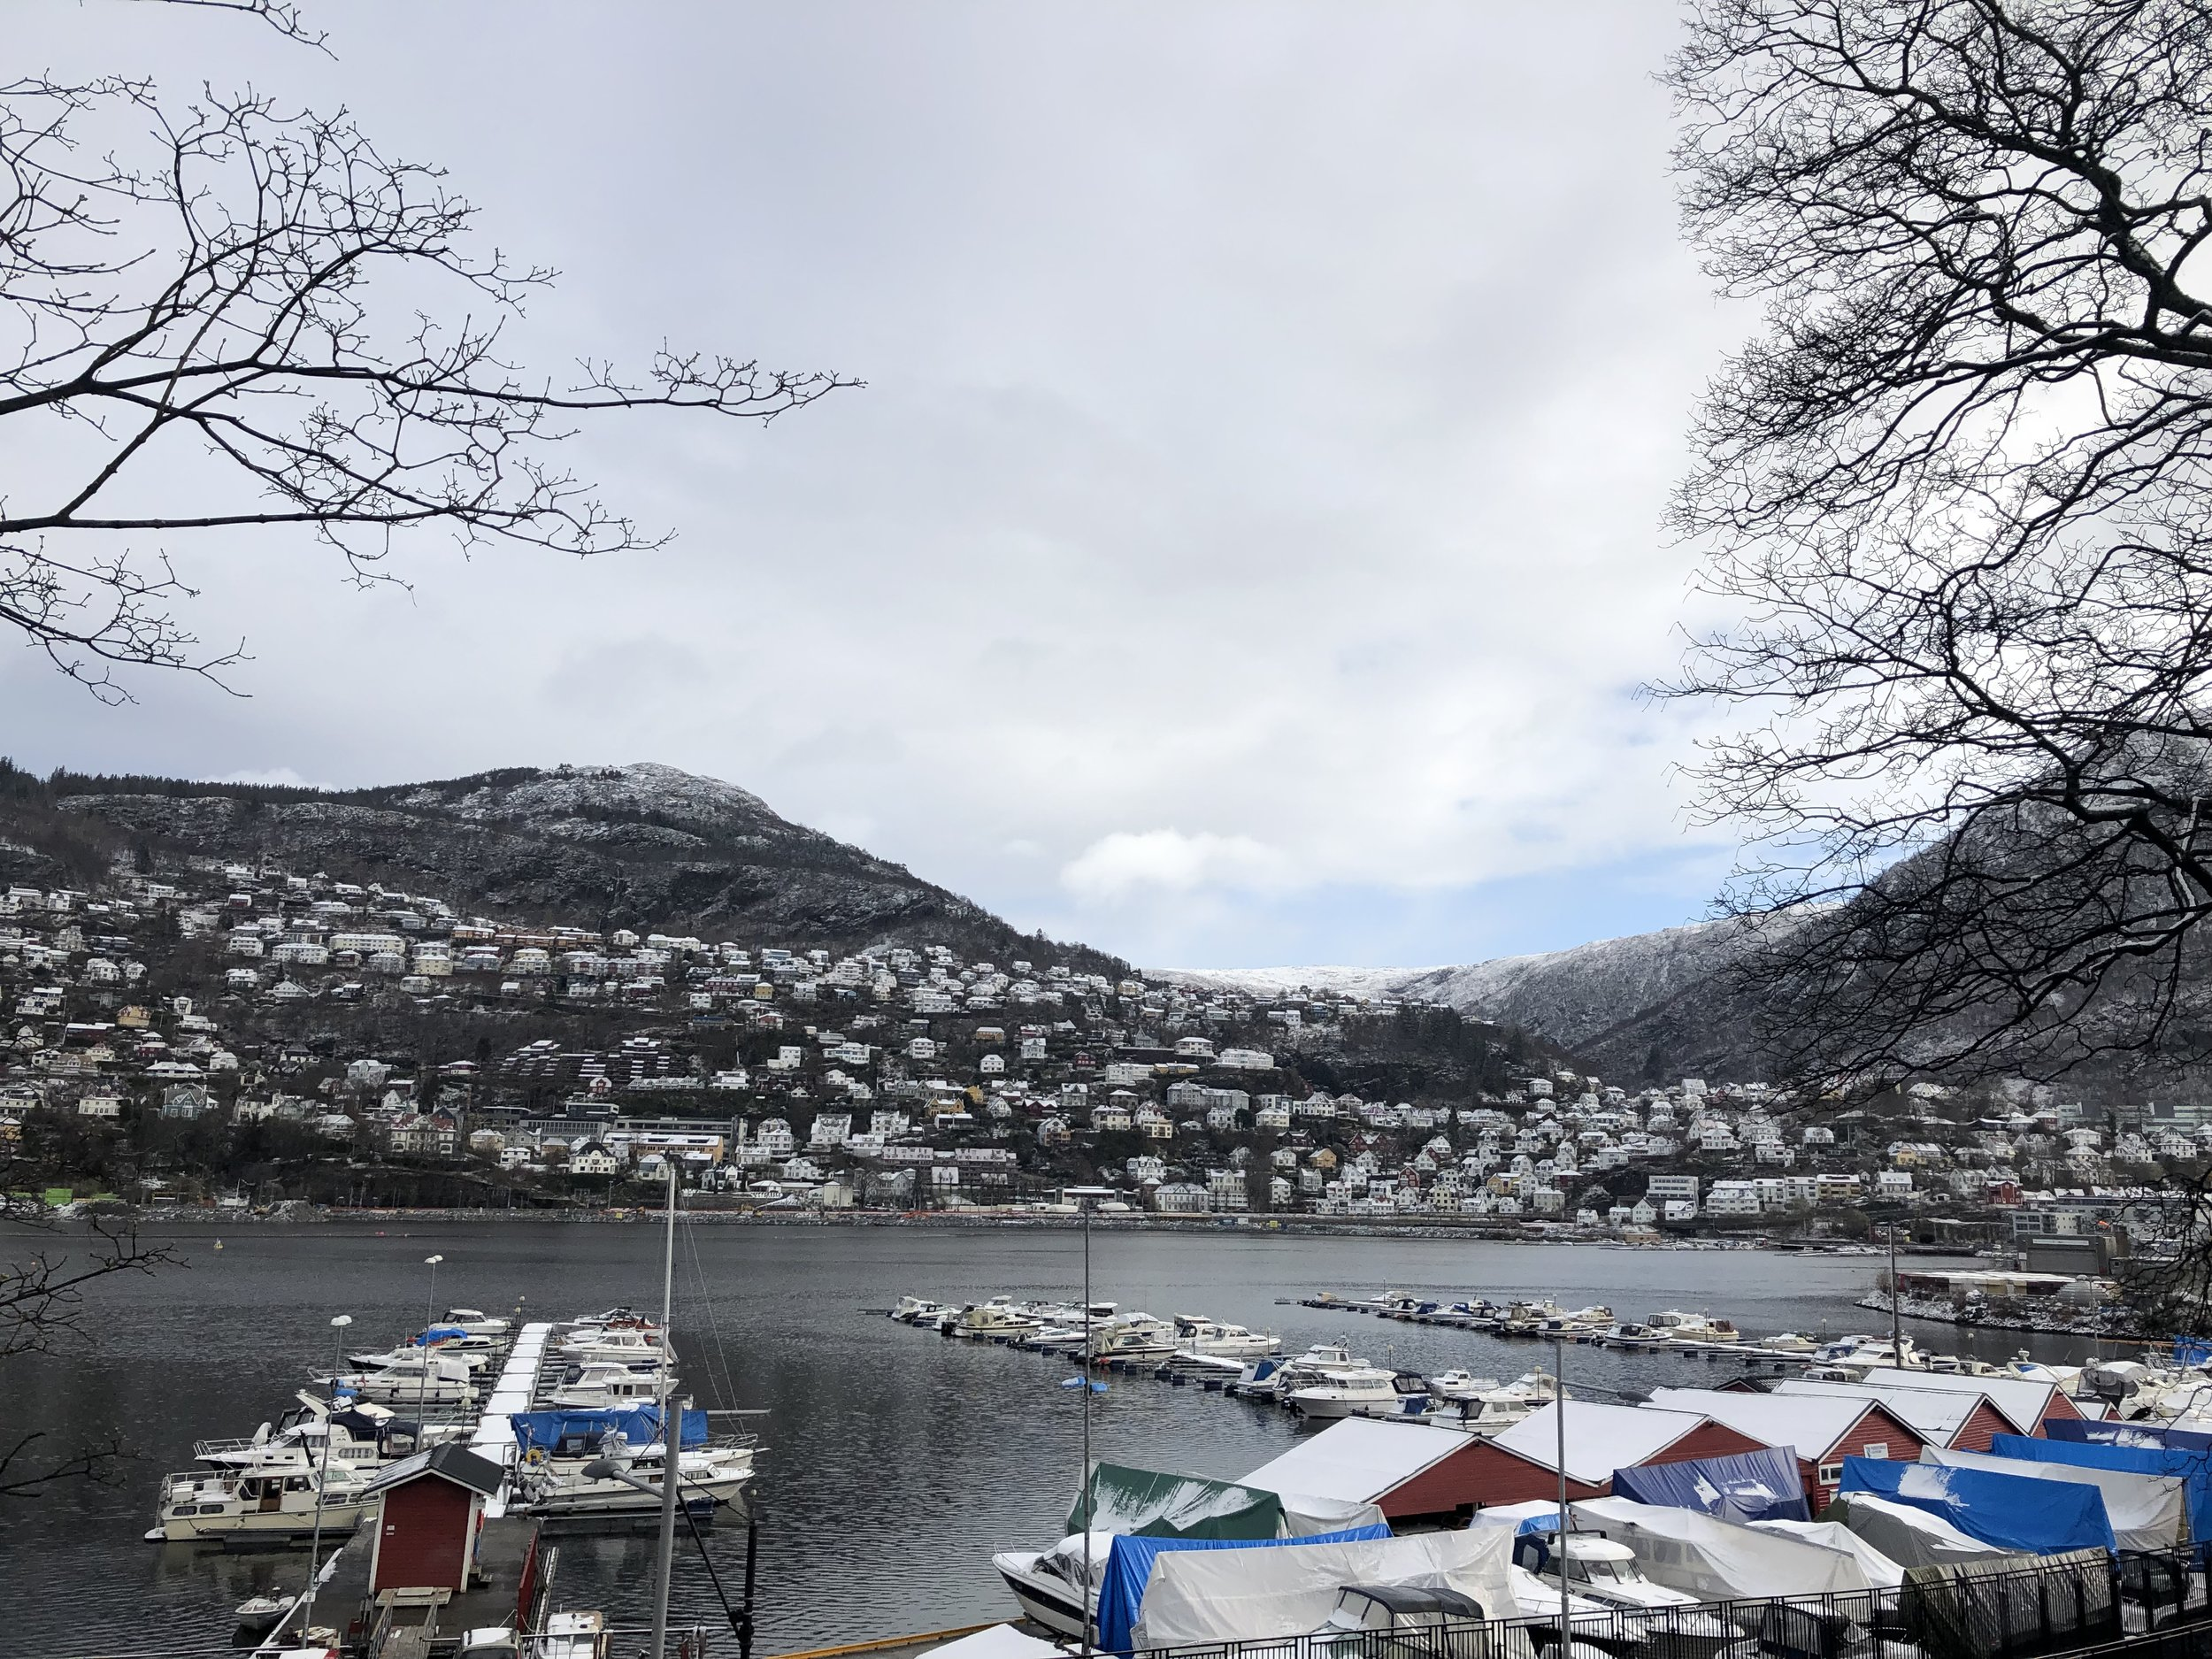 The view from the street that our Airbnb was on in Bergen…not too shabby!